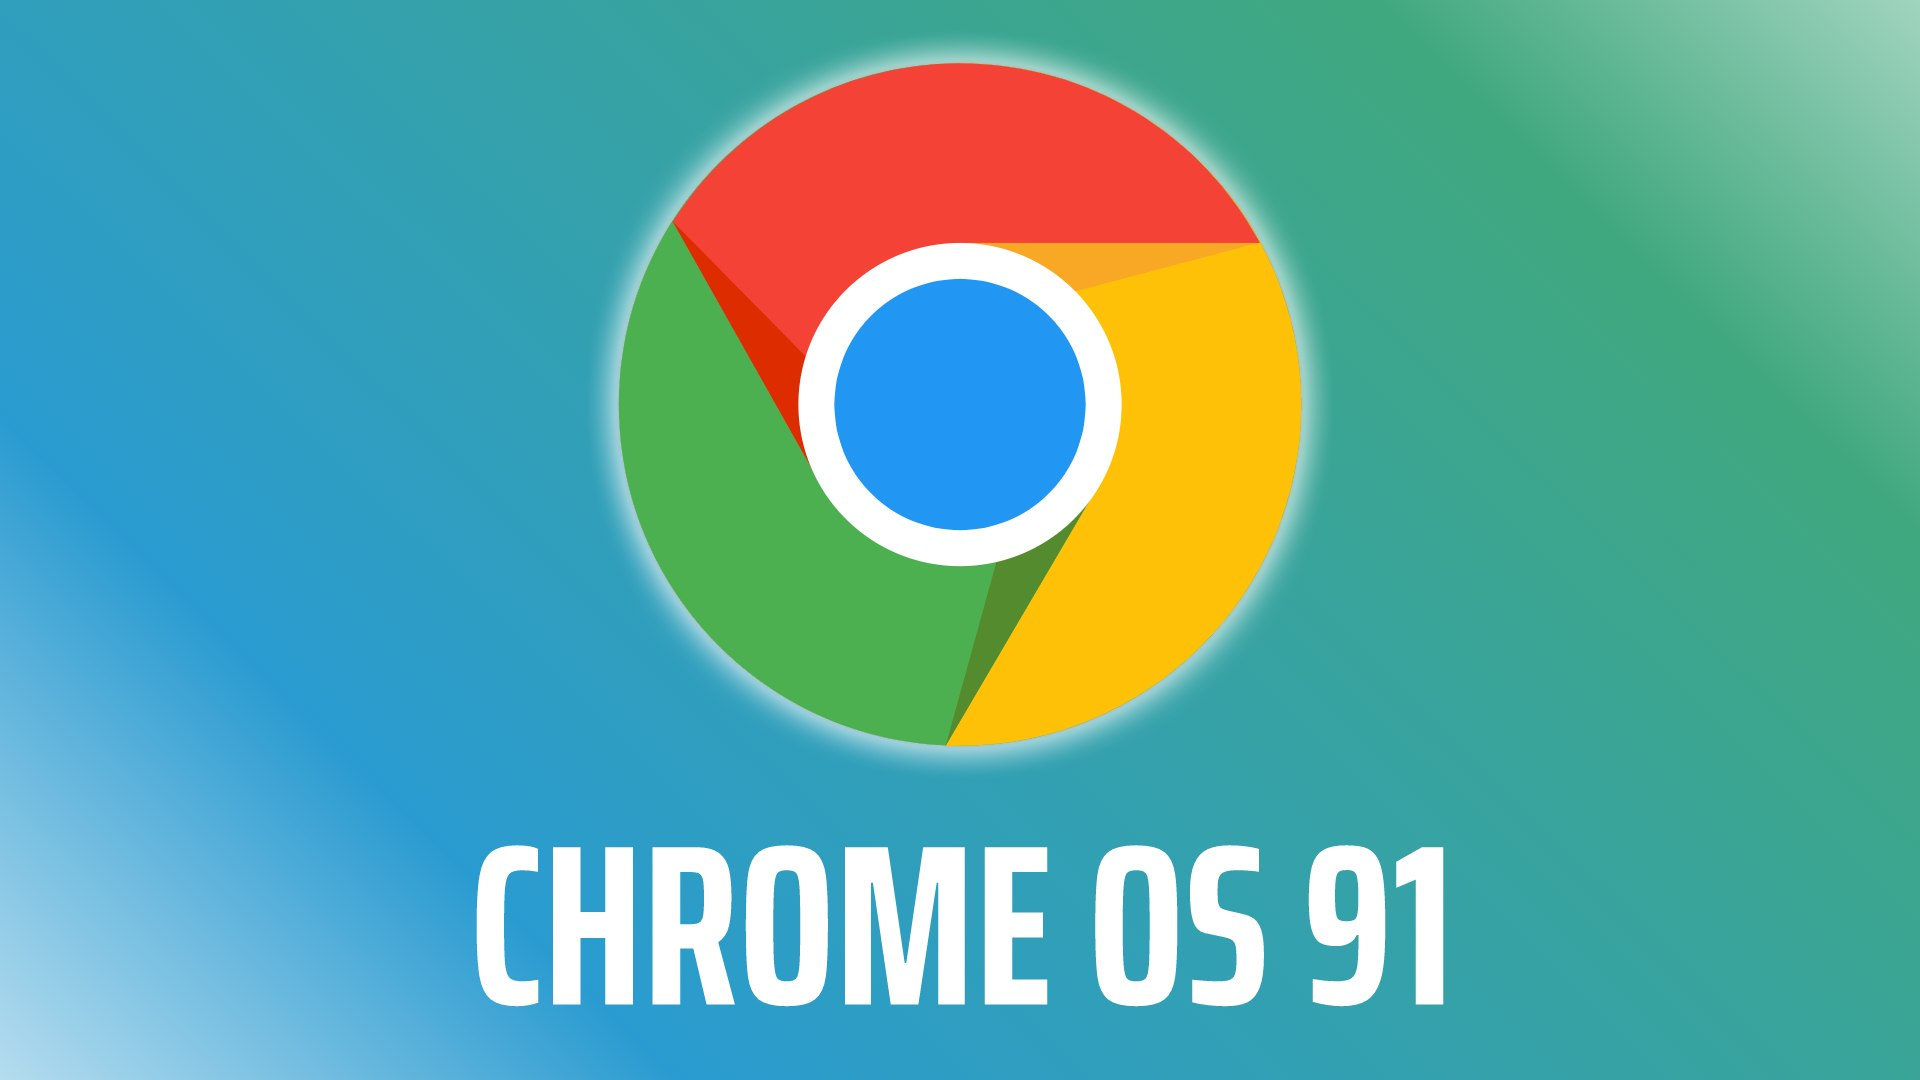 Chrome OS 91 is now rolling out to most Chromebooks, newer models still waiting